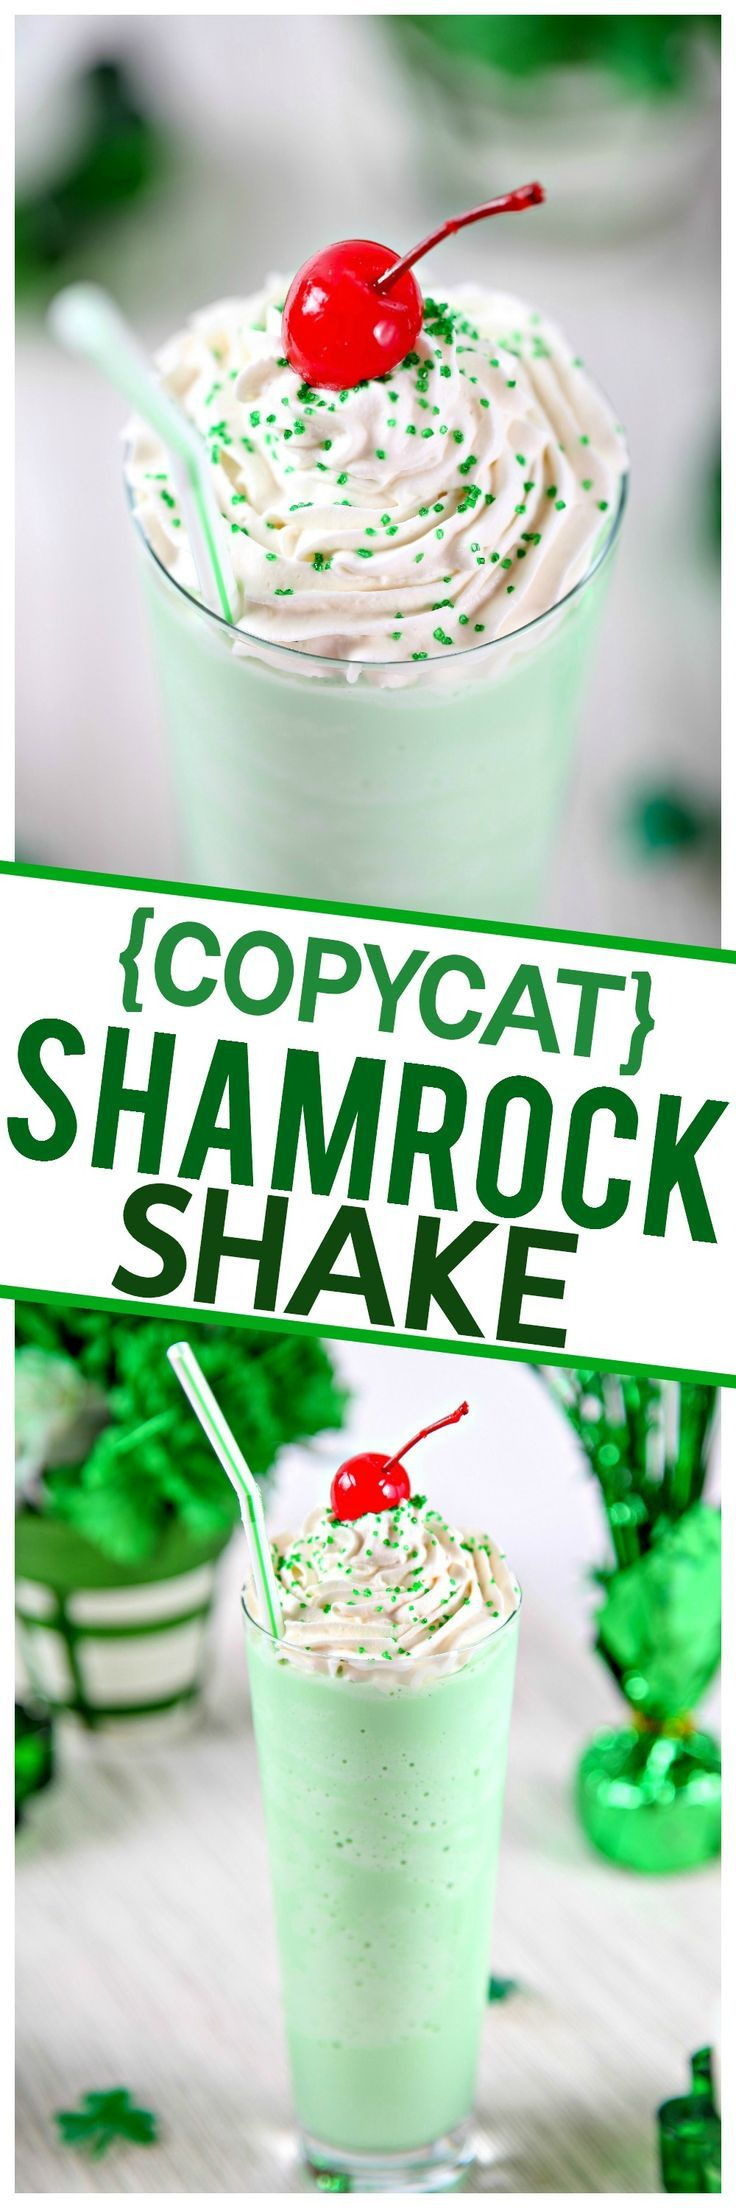 Homemade Shamrock Shake - Cool and creamy mint shake that tastes just like McDonald's Shamrock Shakes. Only 4 simple ingredients, no blender required!